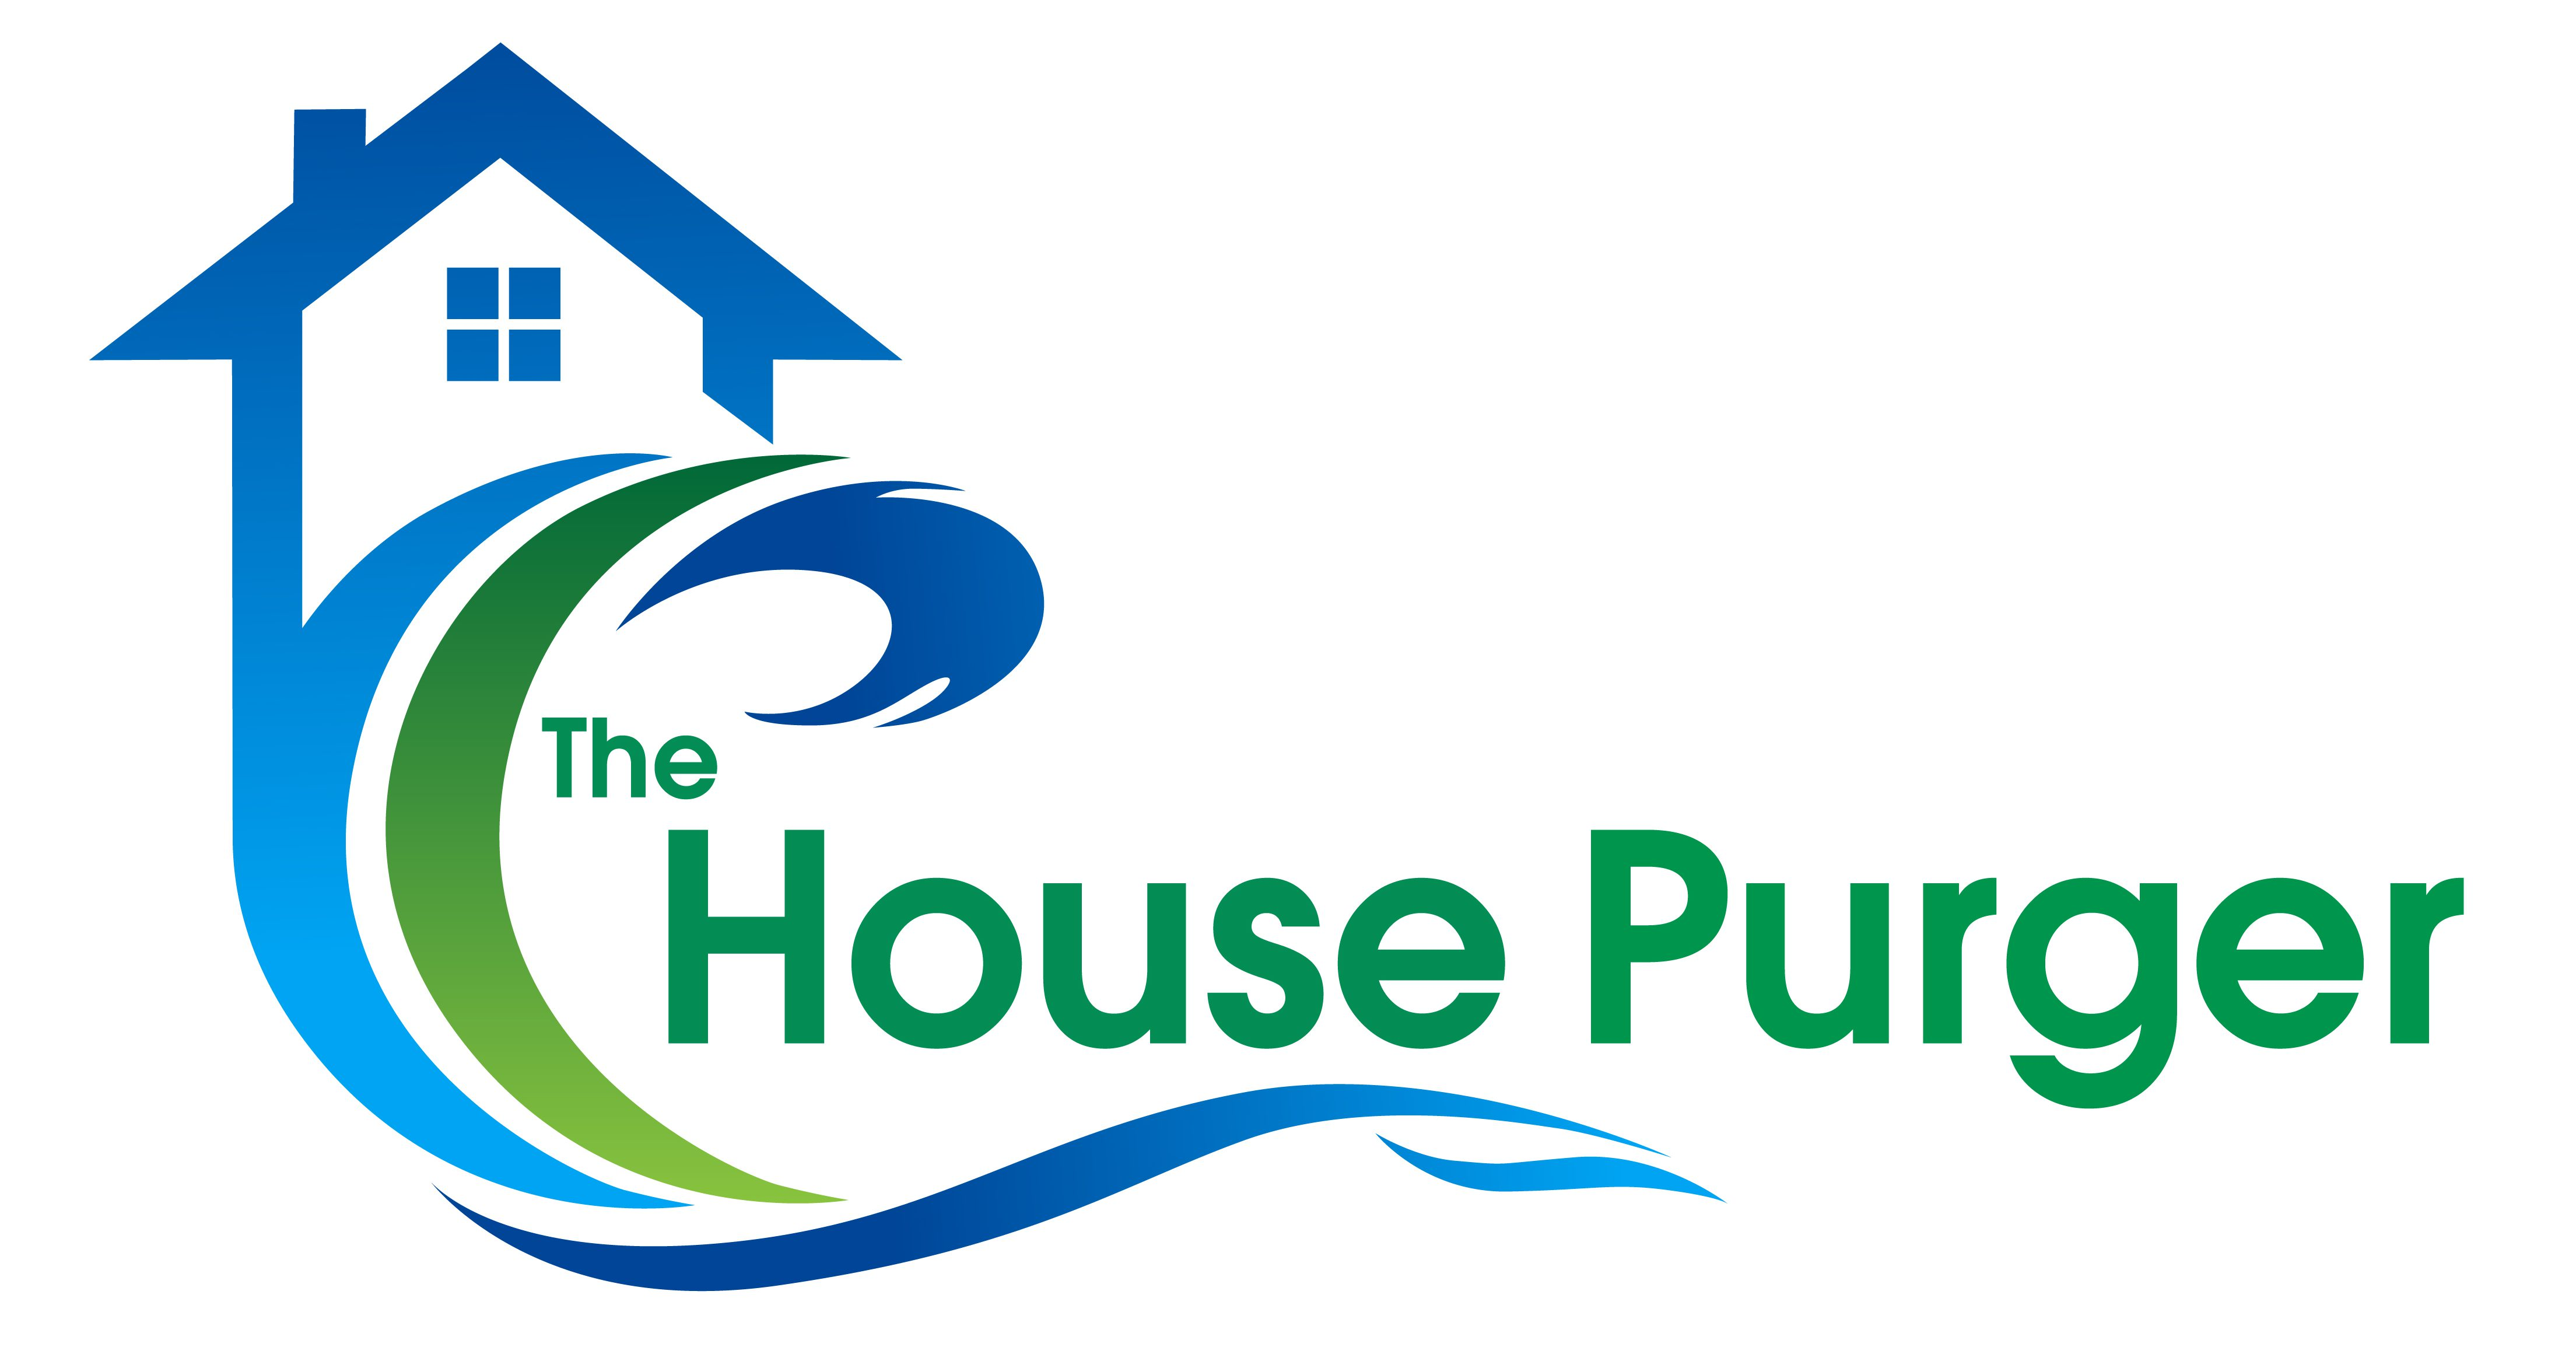 The House Purger